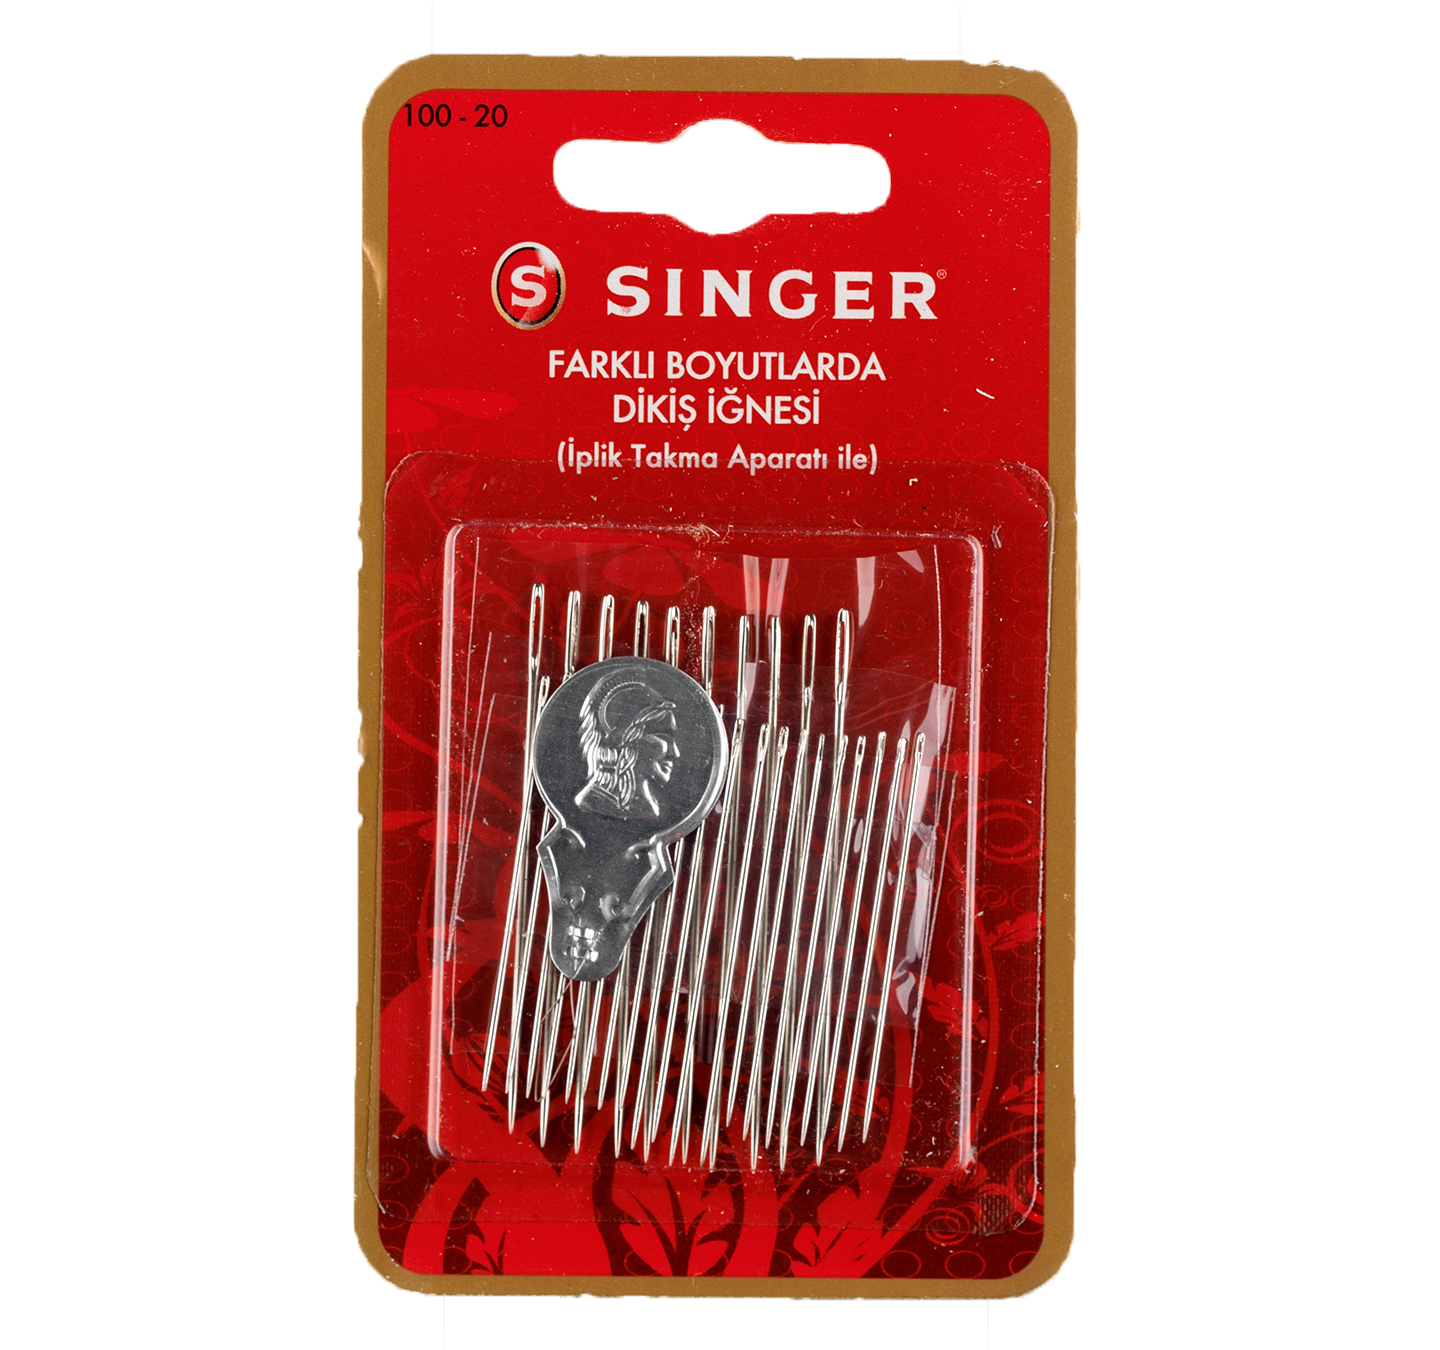 SINGER 100-20 ASSORTED NEEDLES